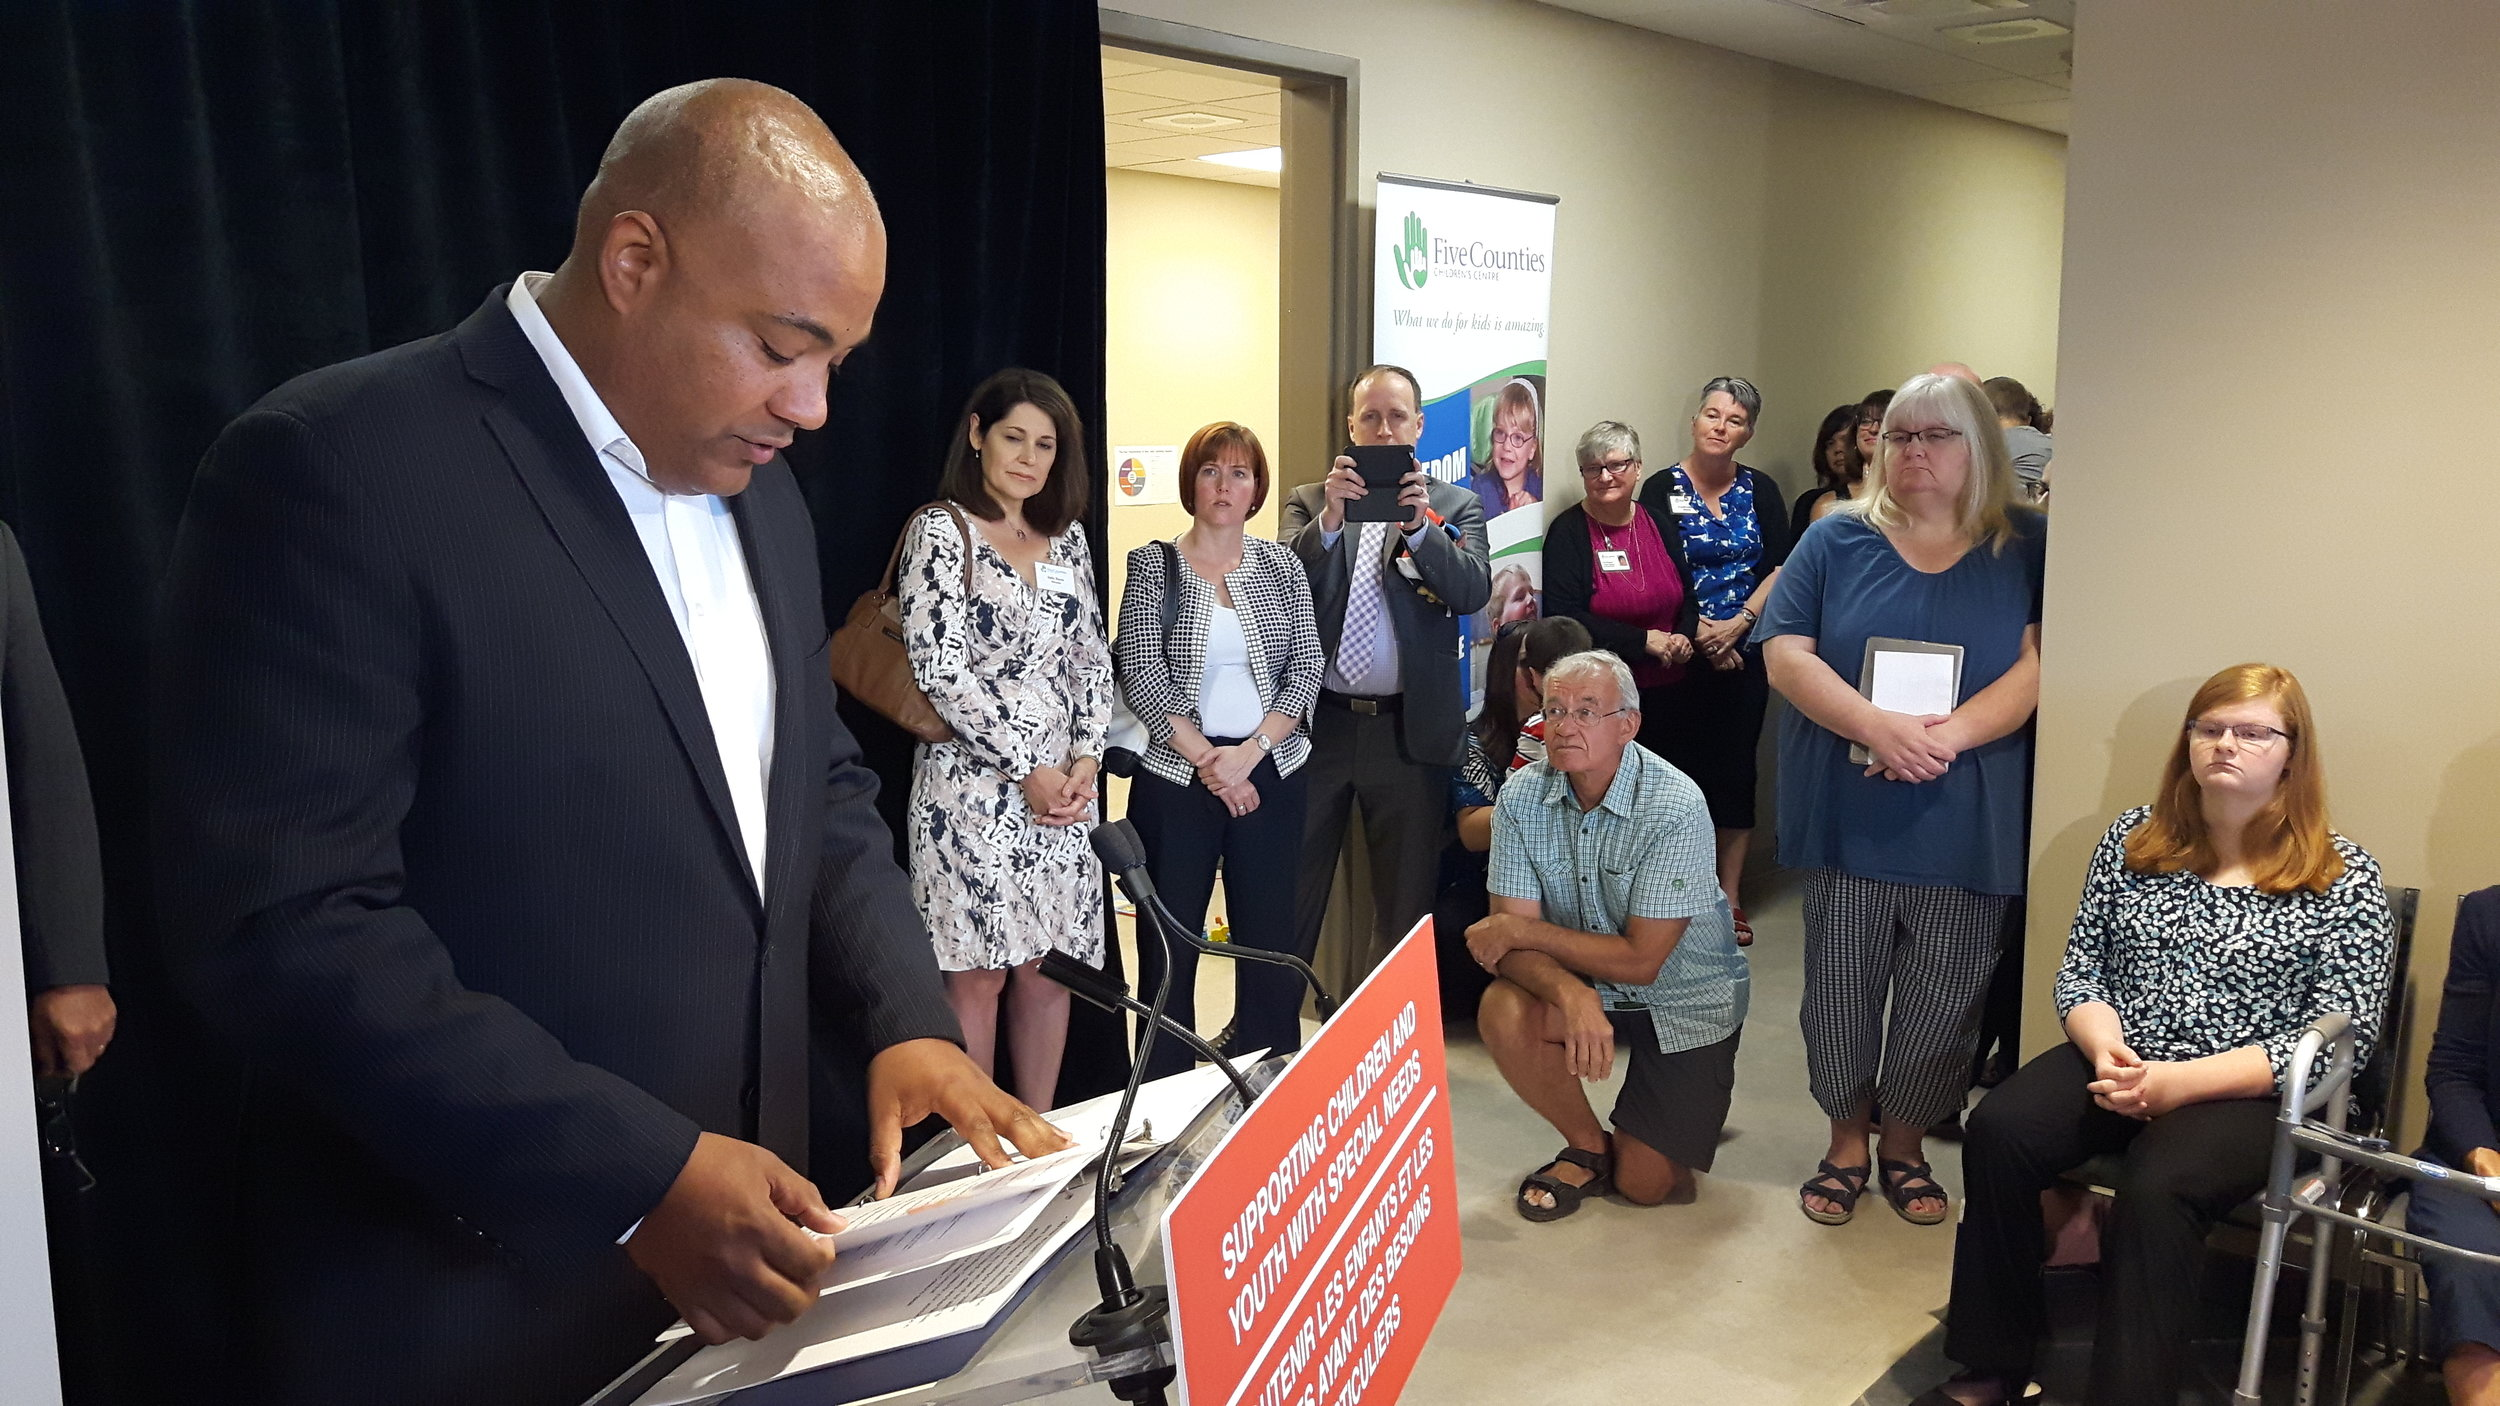 Minister Coteau opens 5 Counties 20170828_093830.jpg